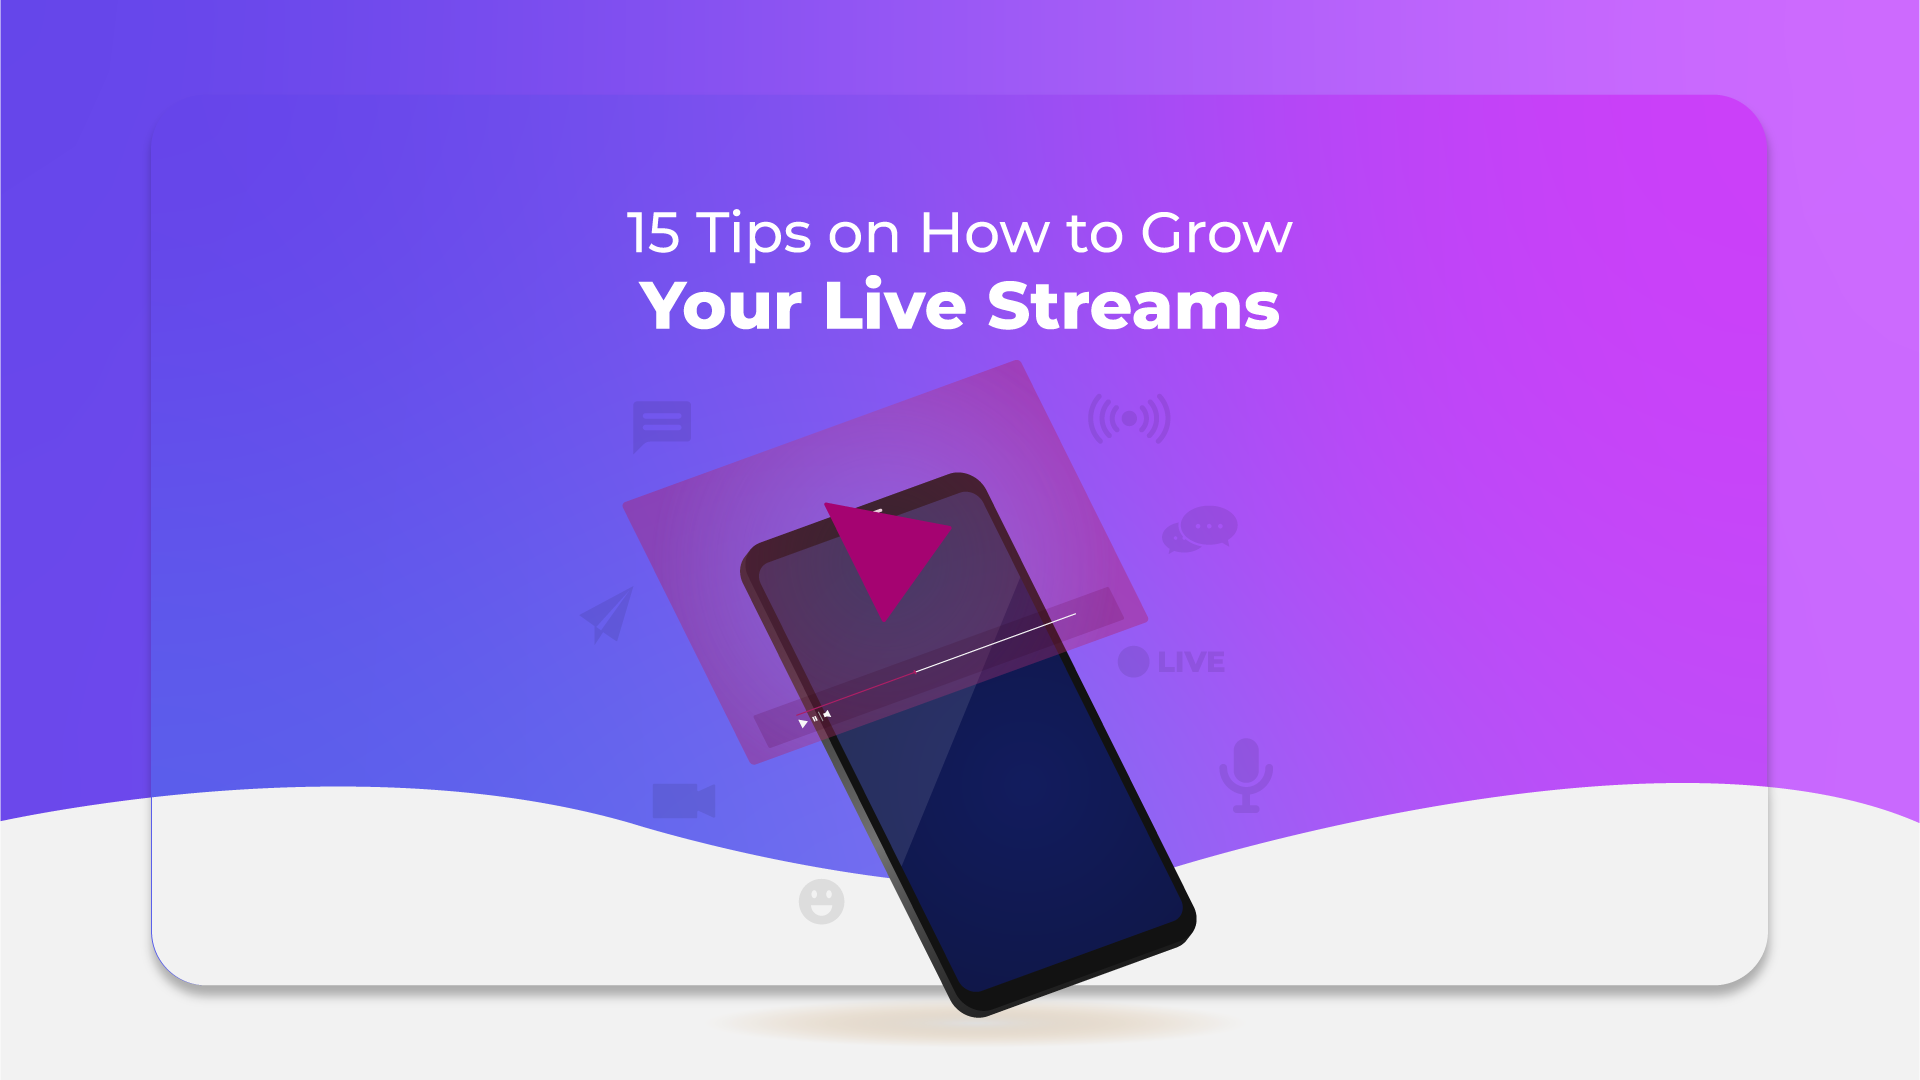 15 Tips on How to Grow Your Live Streams